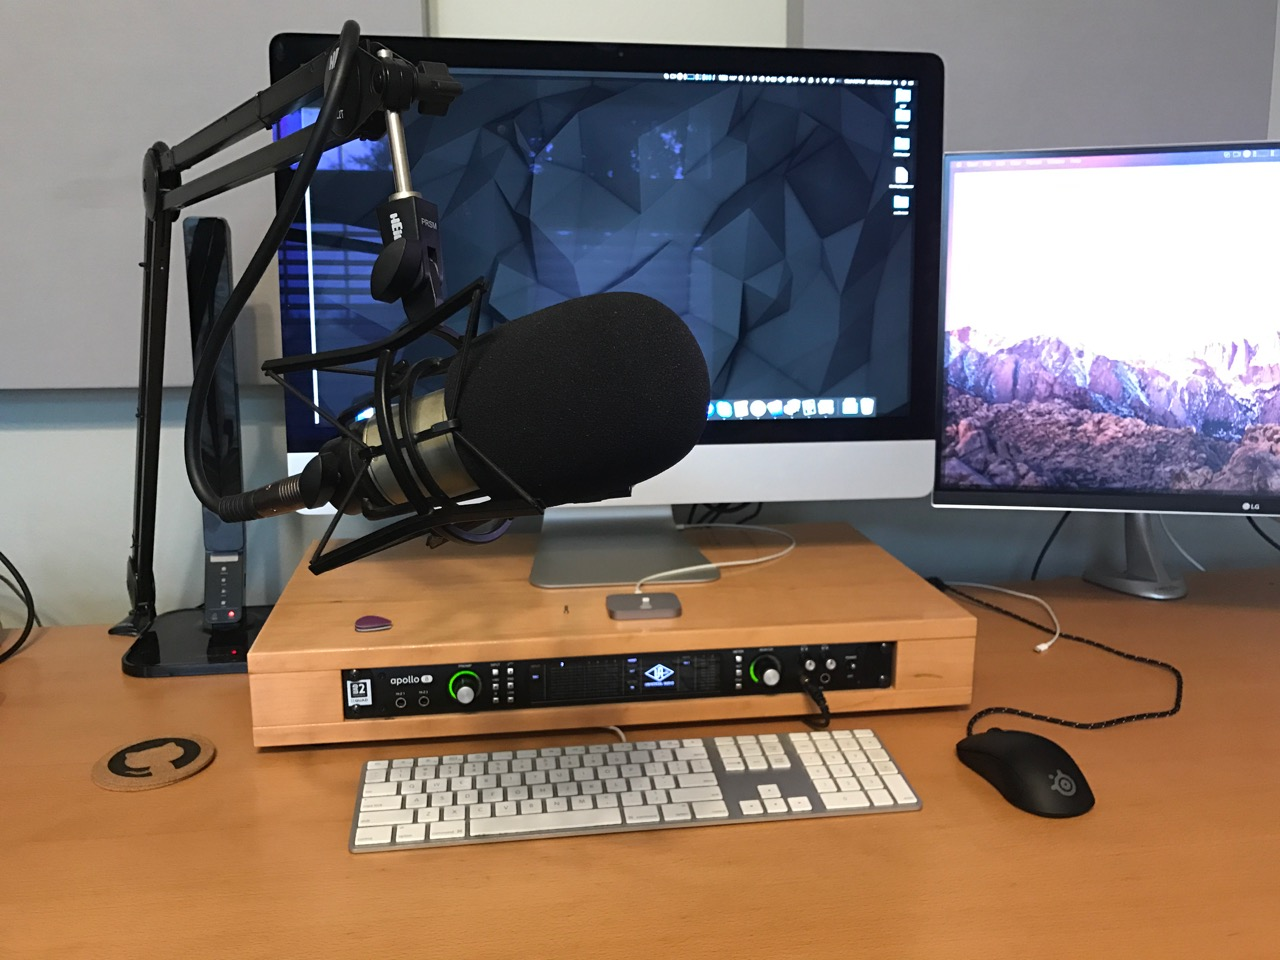 My Screencasting setup